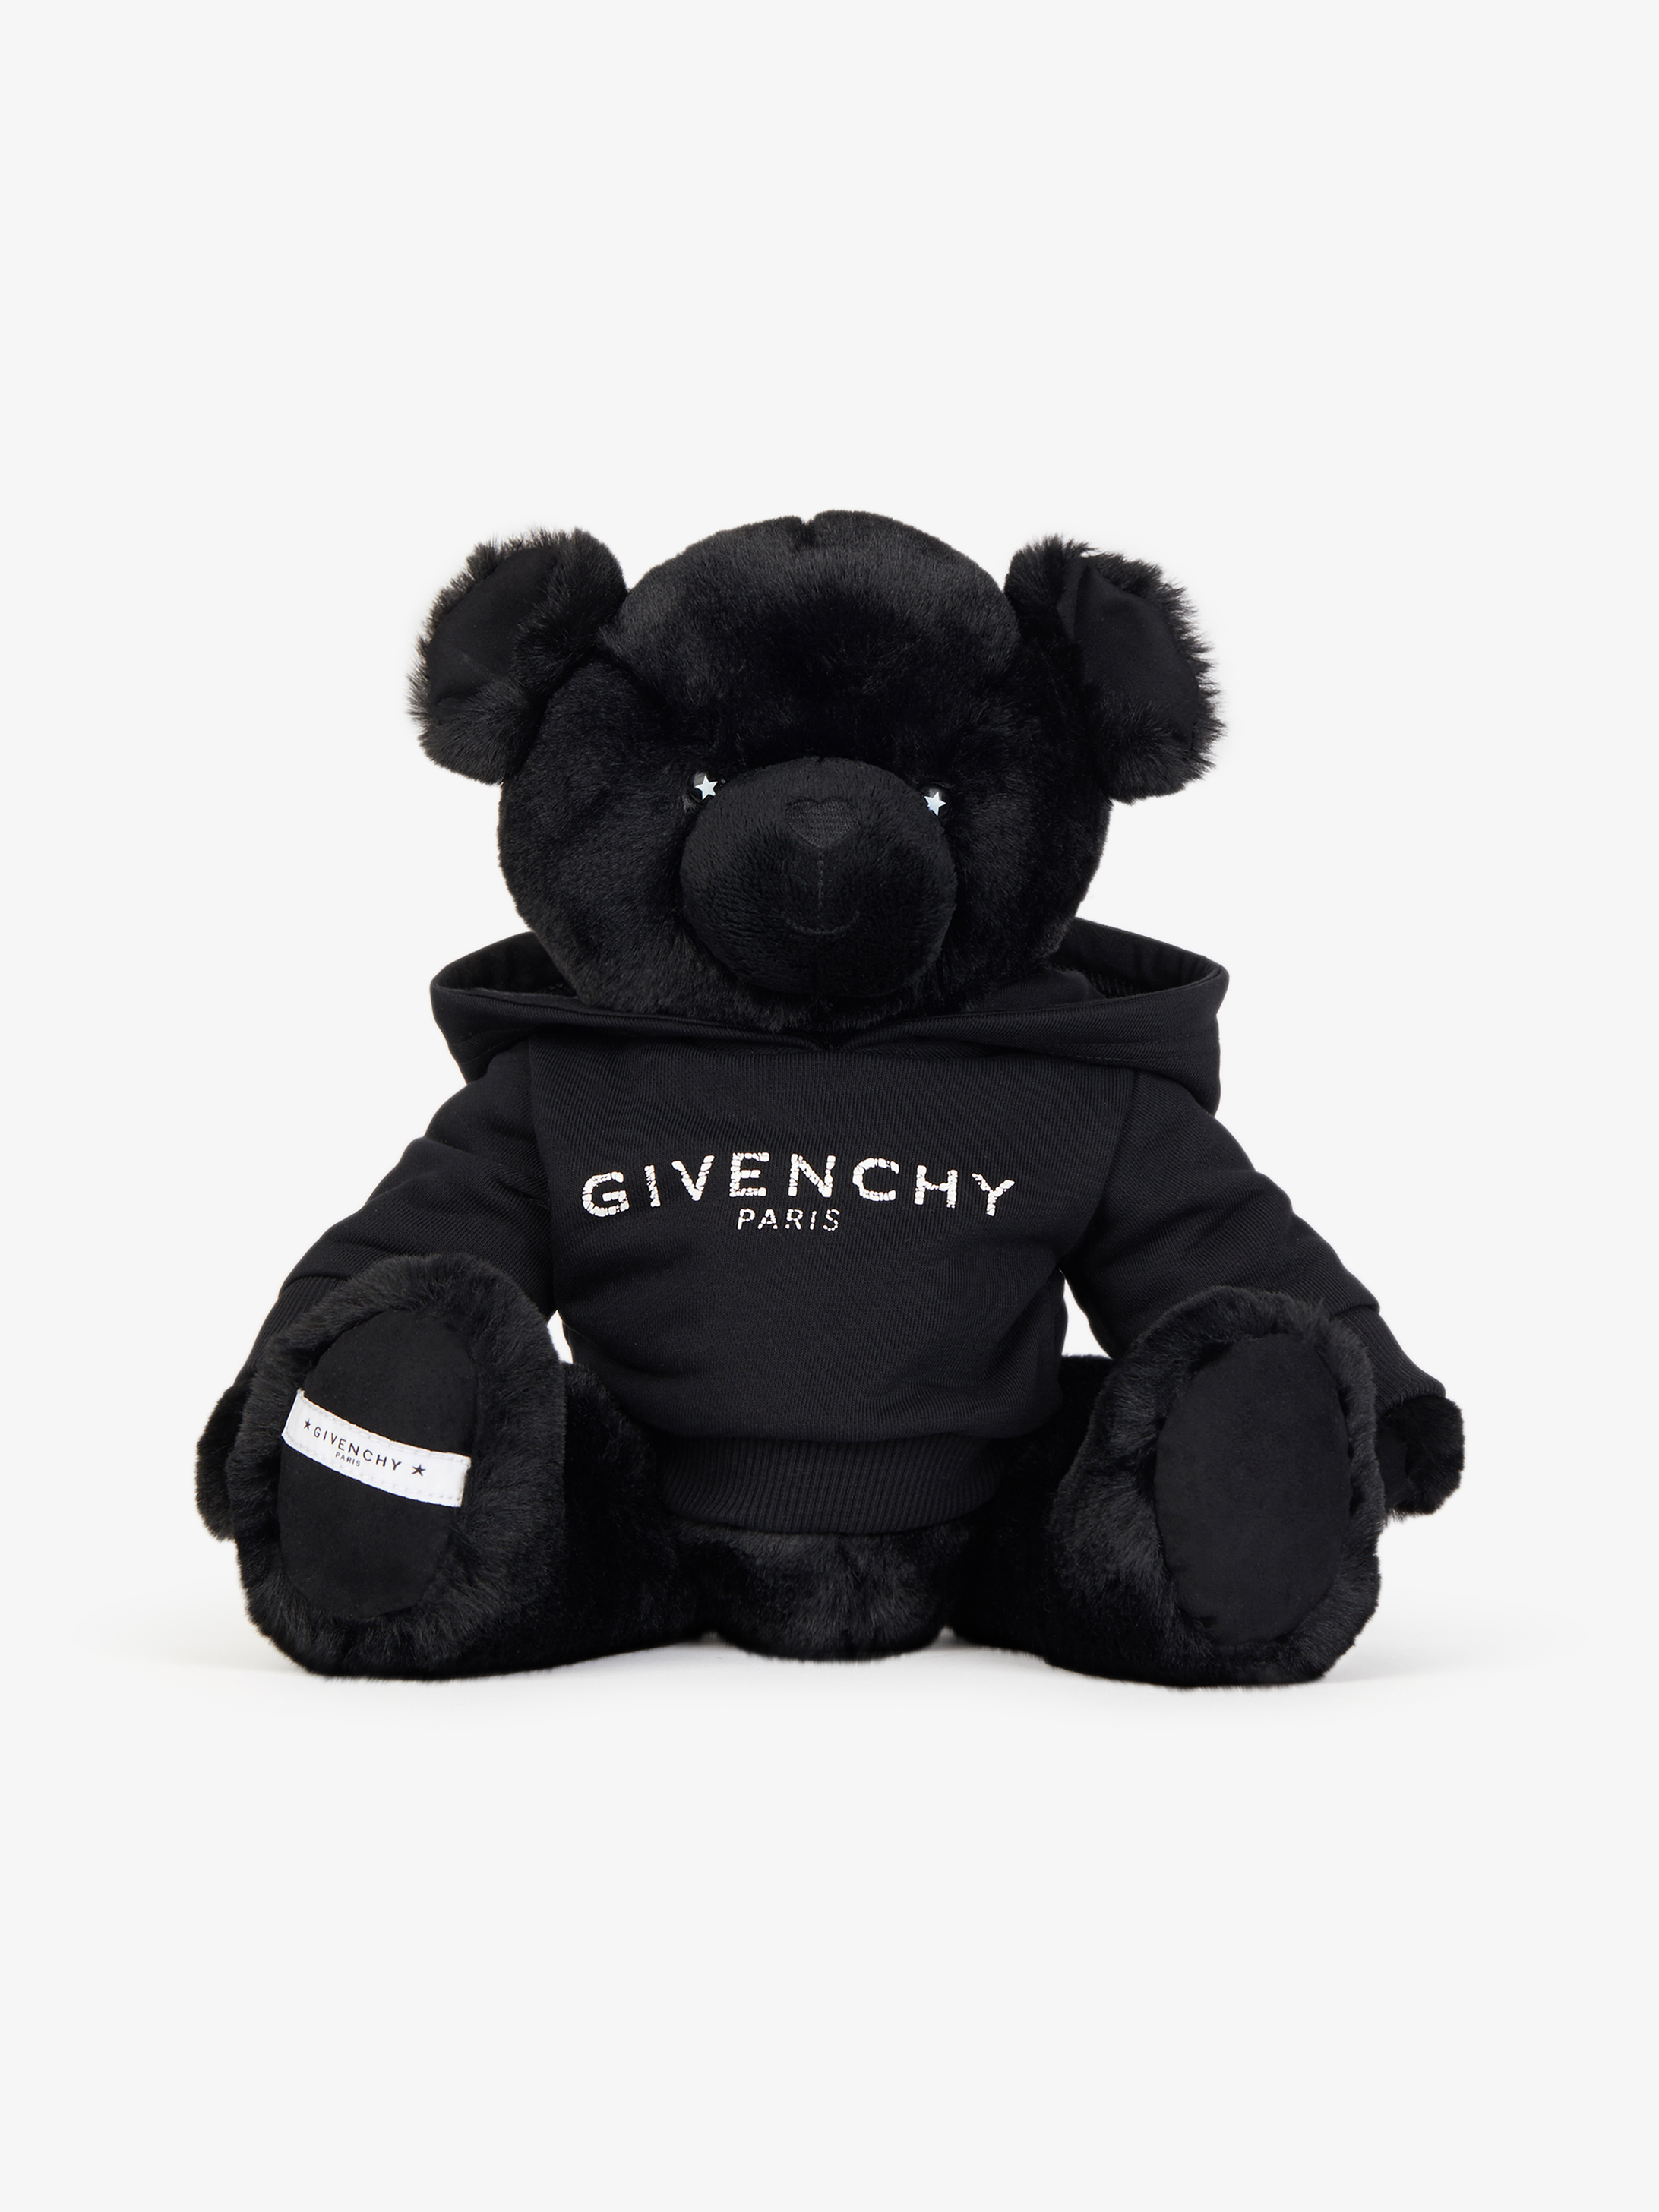 Orsacchiotto GIVENCHY PARIS